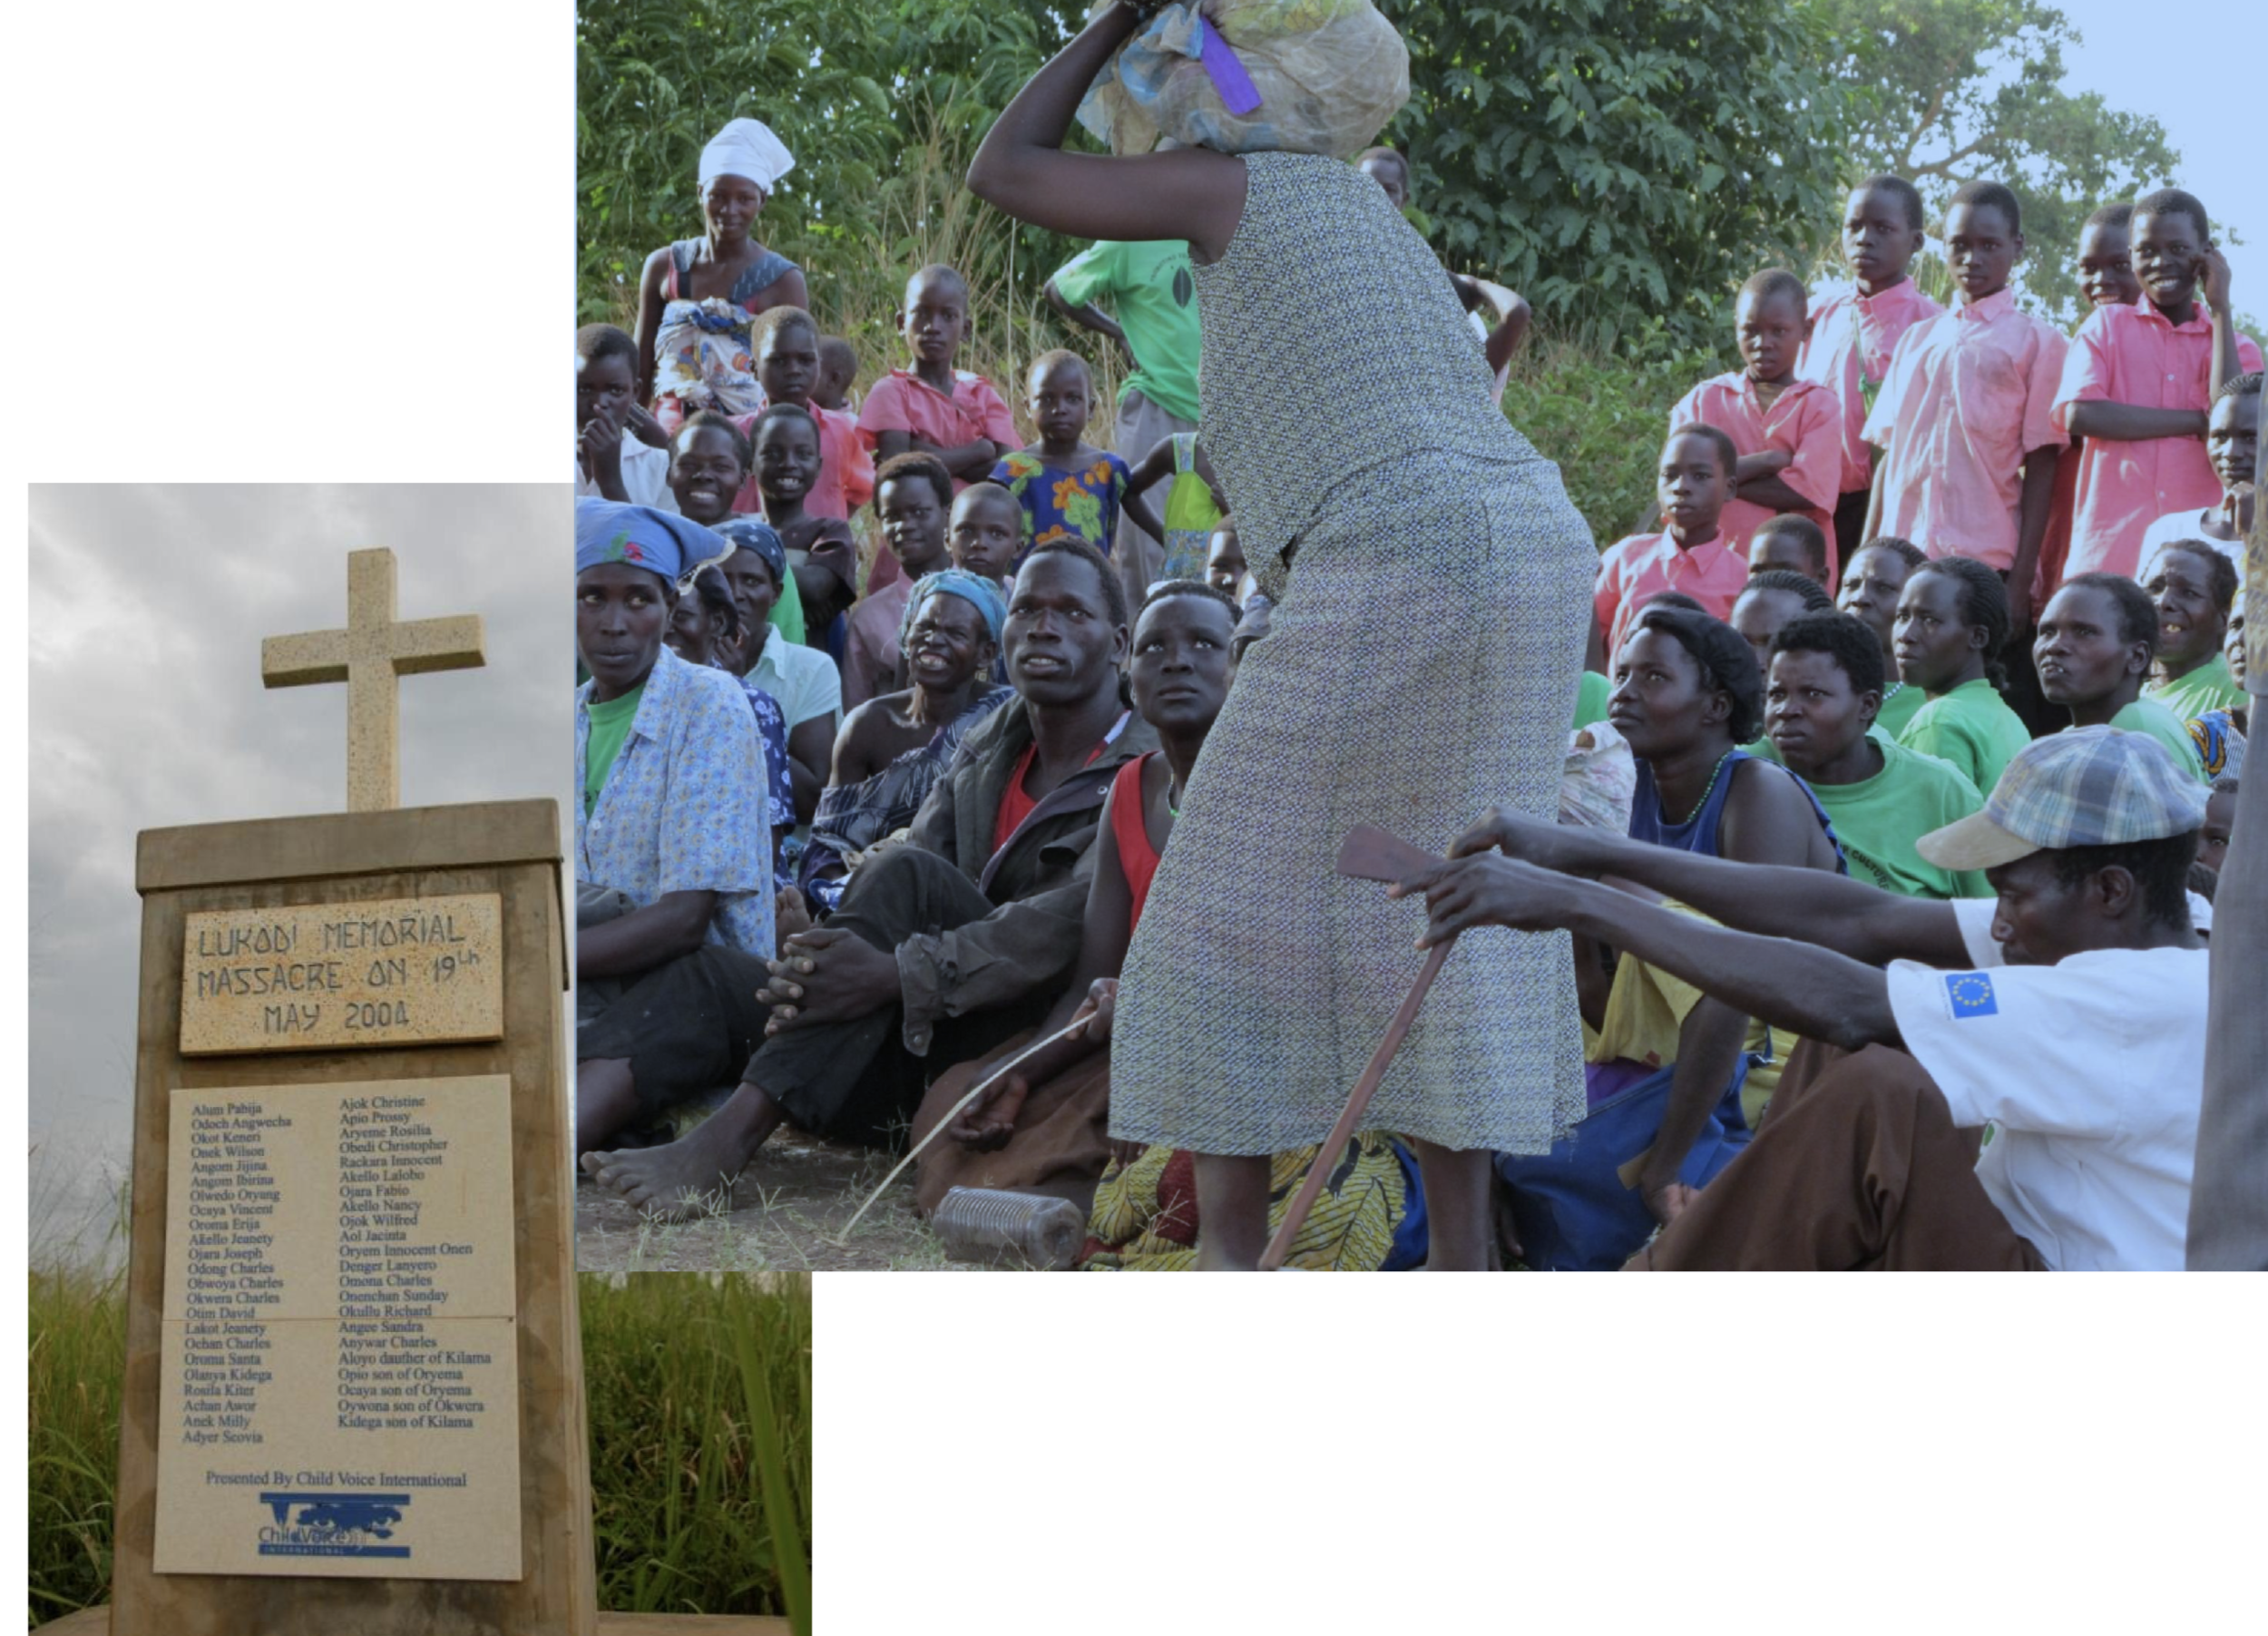 A healing ceremony for a massacre site in Uganda. Photo provided by Nelson Abiti.